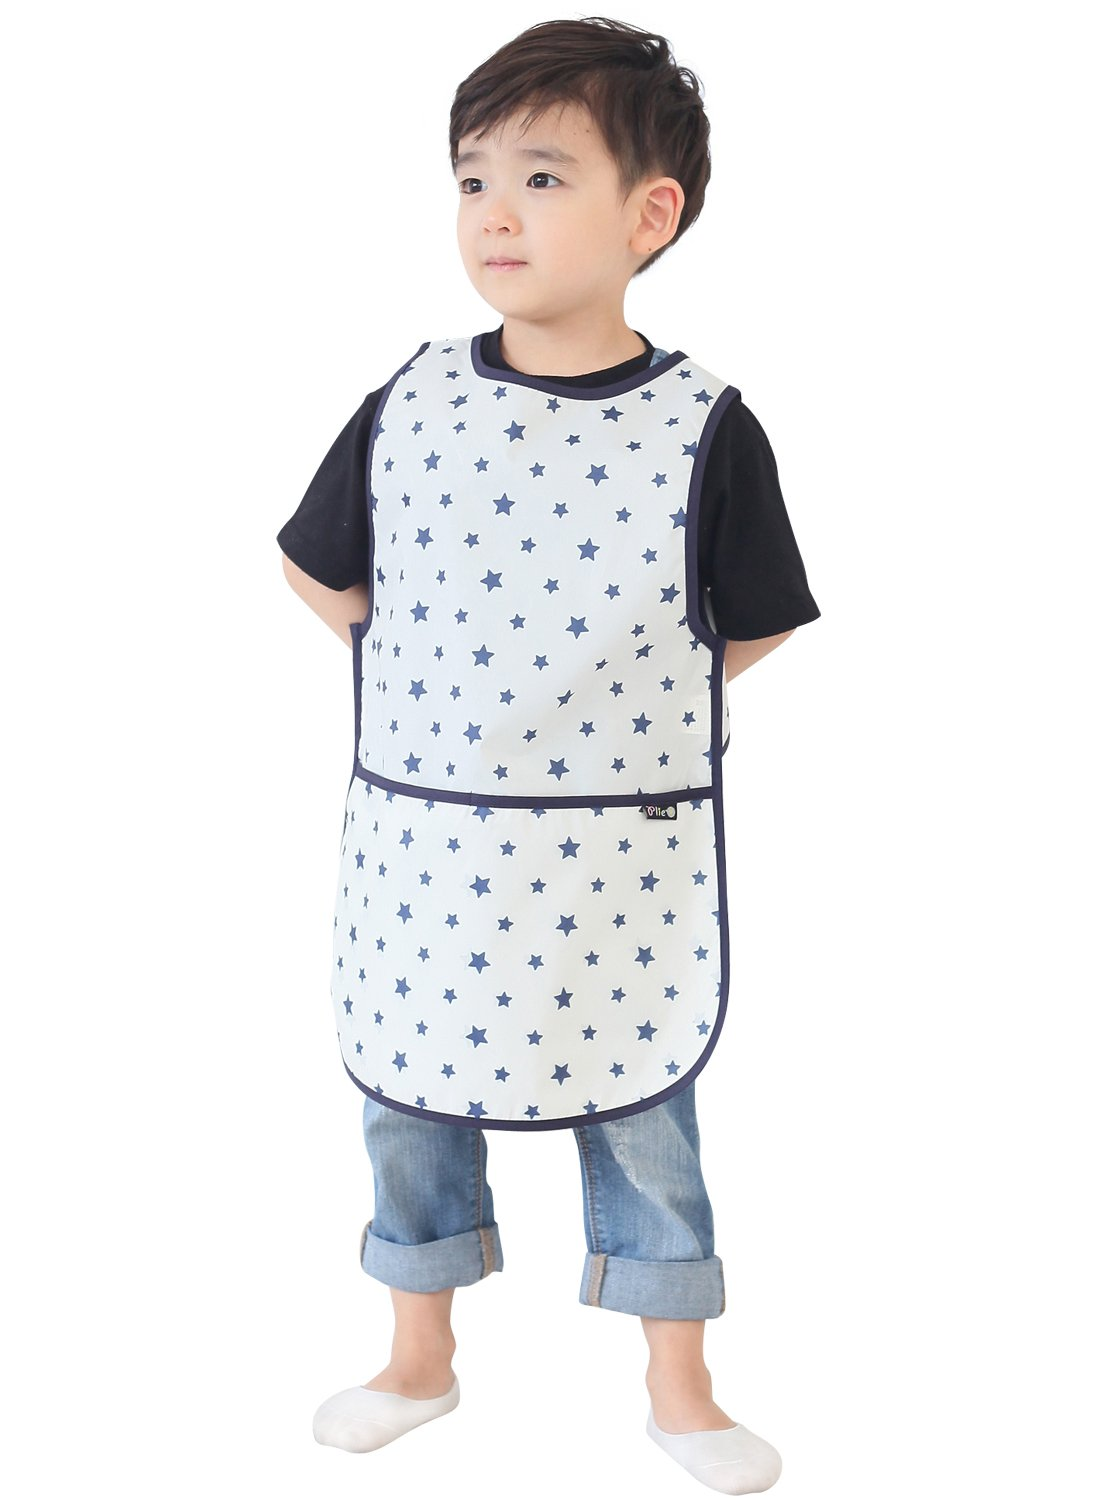 Plie Children Waterproof Sleeveless Art Smock Apron with Pockets, Pastel Dot (41-L) MIN01-41-L